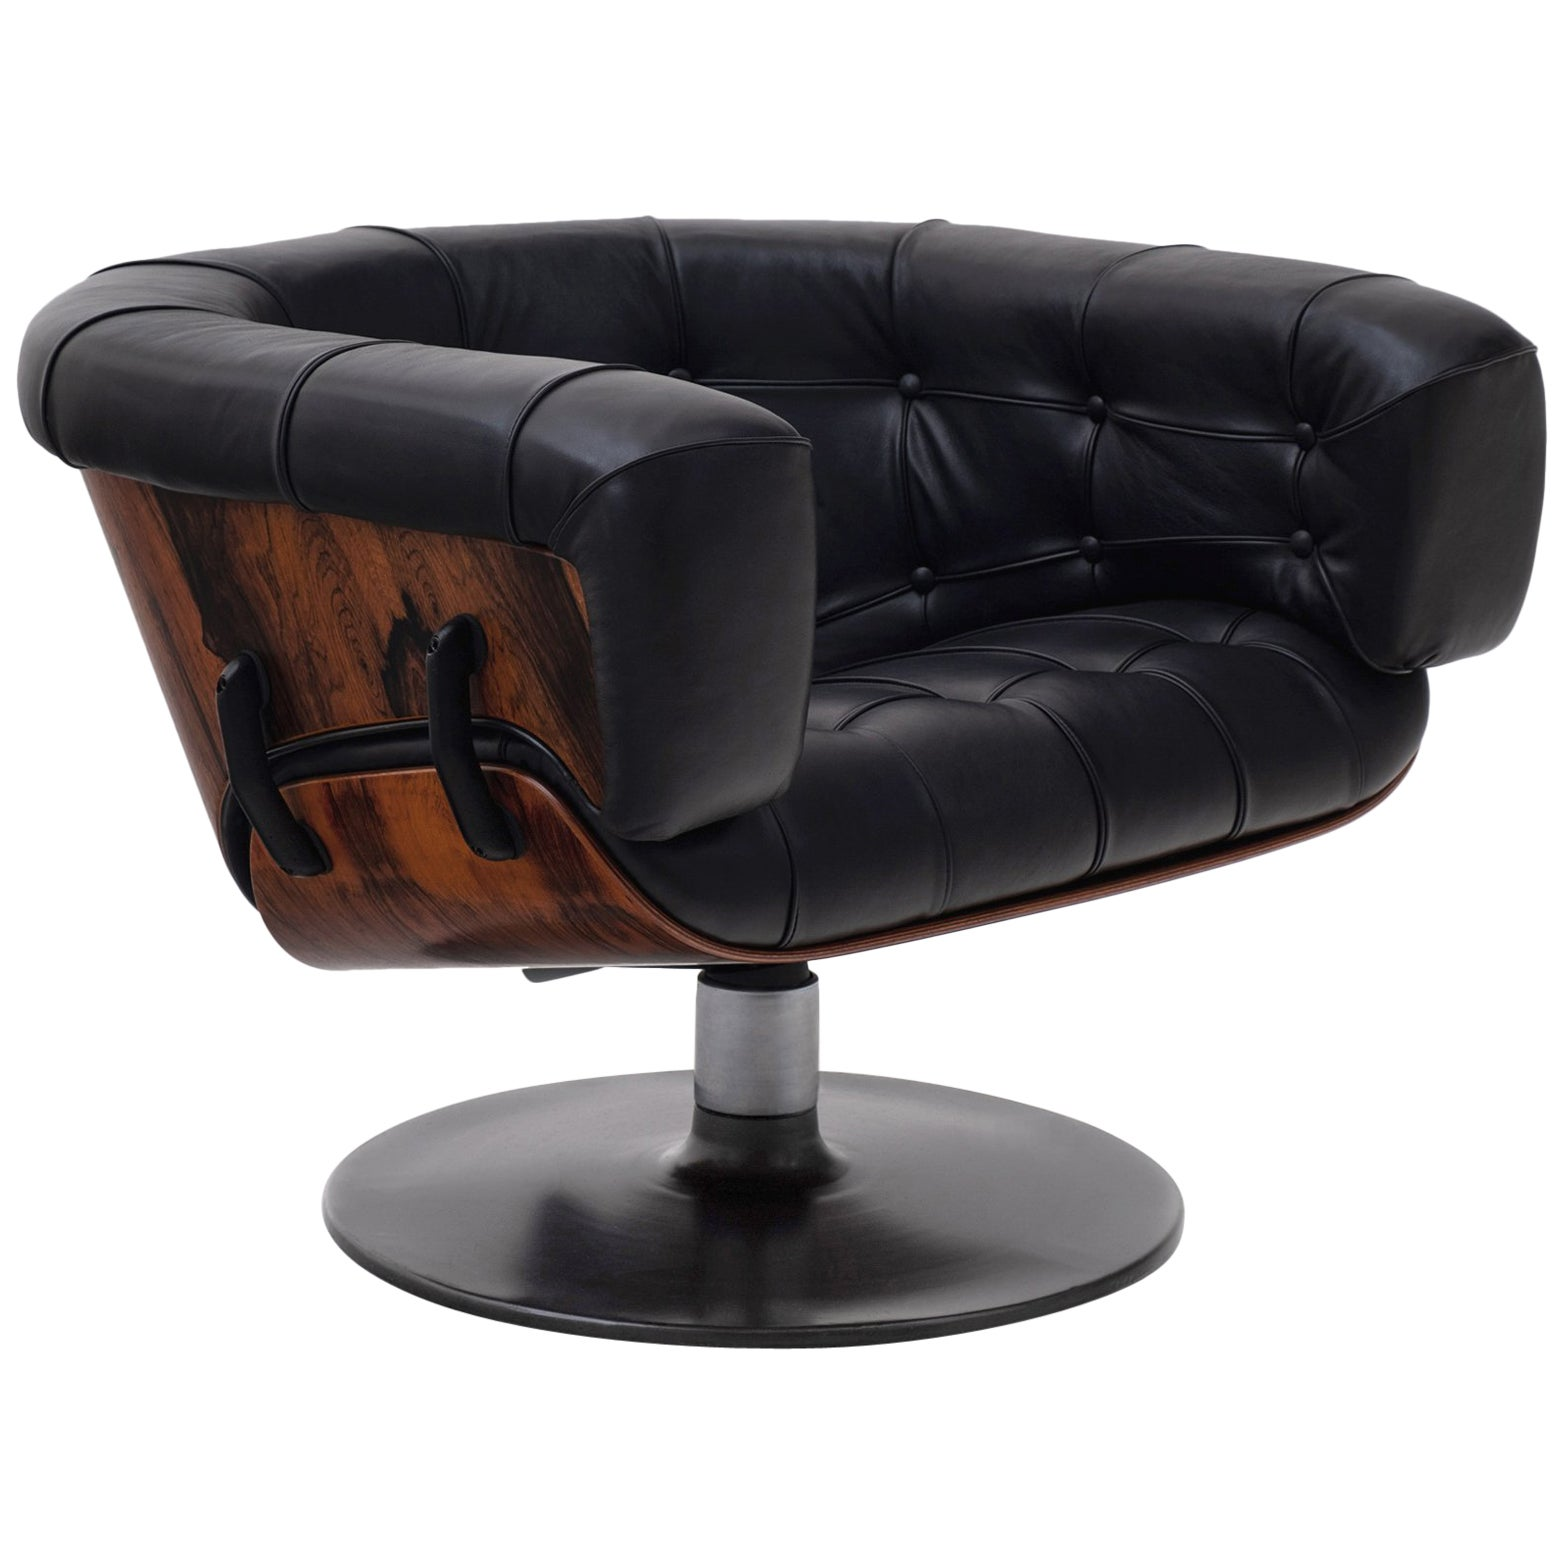 Black Leather Lounge Chair Mid Century Modern Rosewood And Black Leather Lounge Chair By Martin Grierson